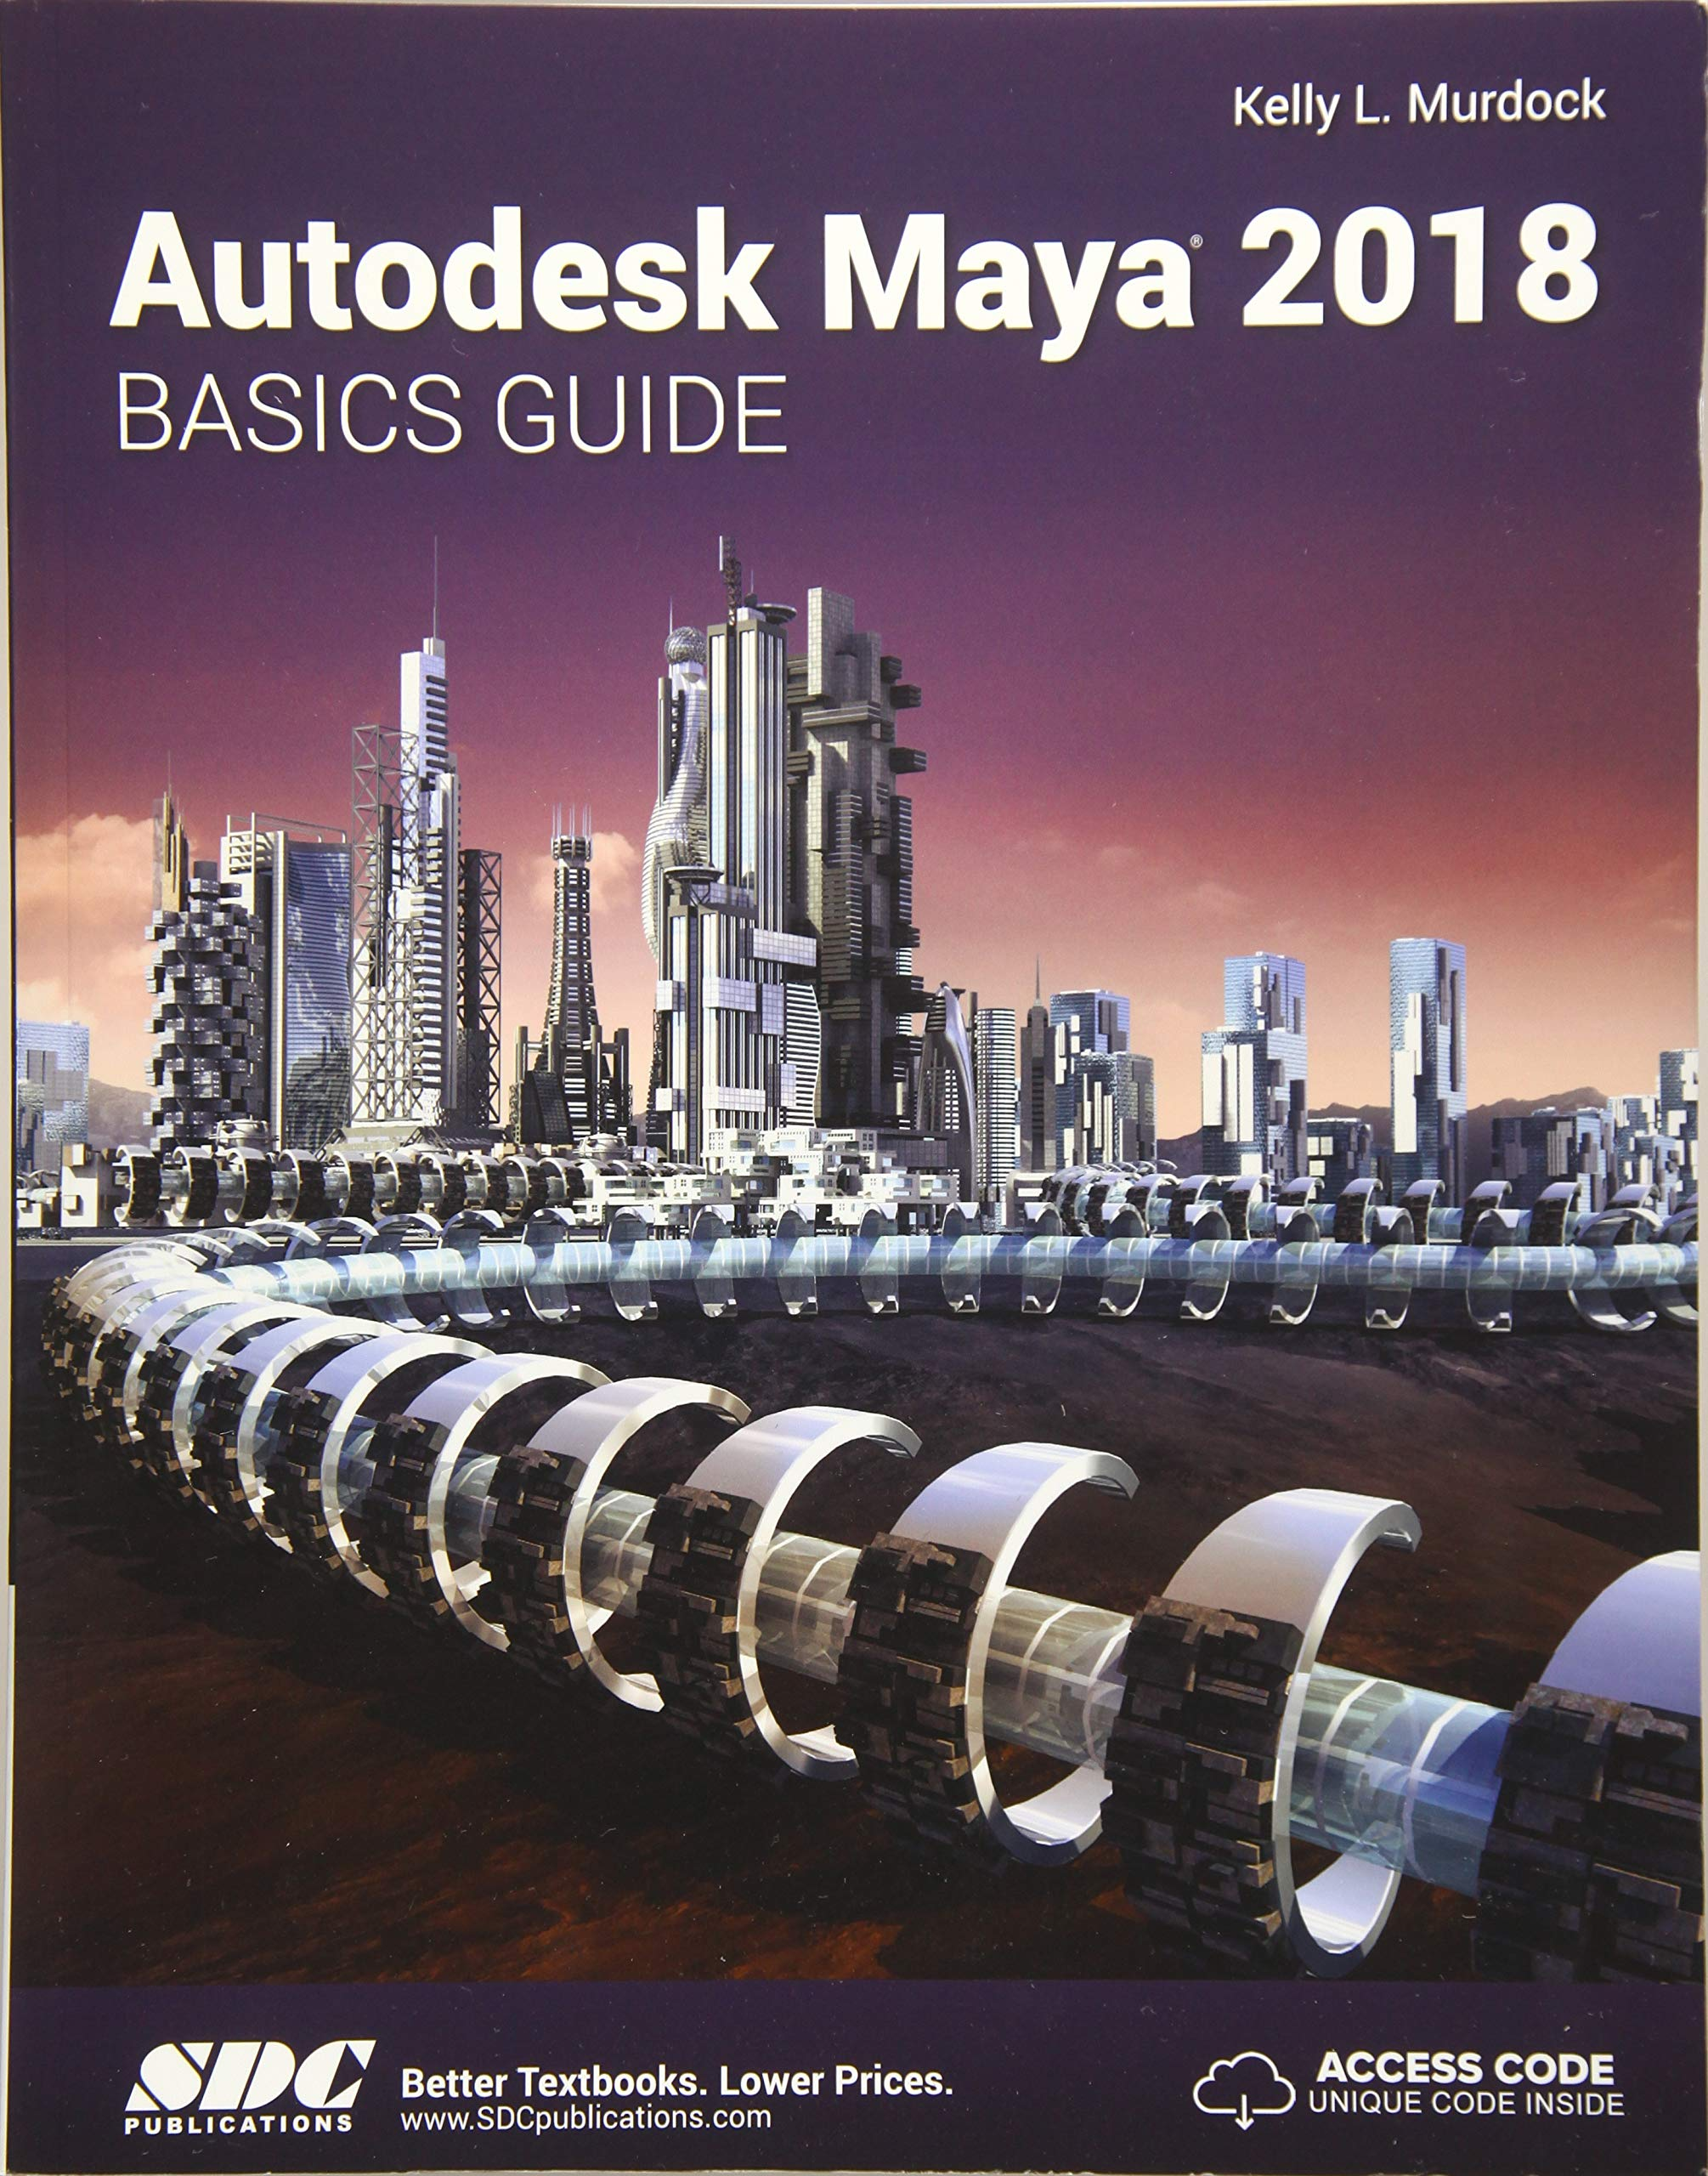 Autodesk Maya 2018 Basics Guide: Amazon co uk: Kelly Murdoch